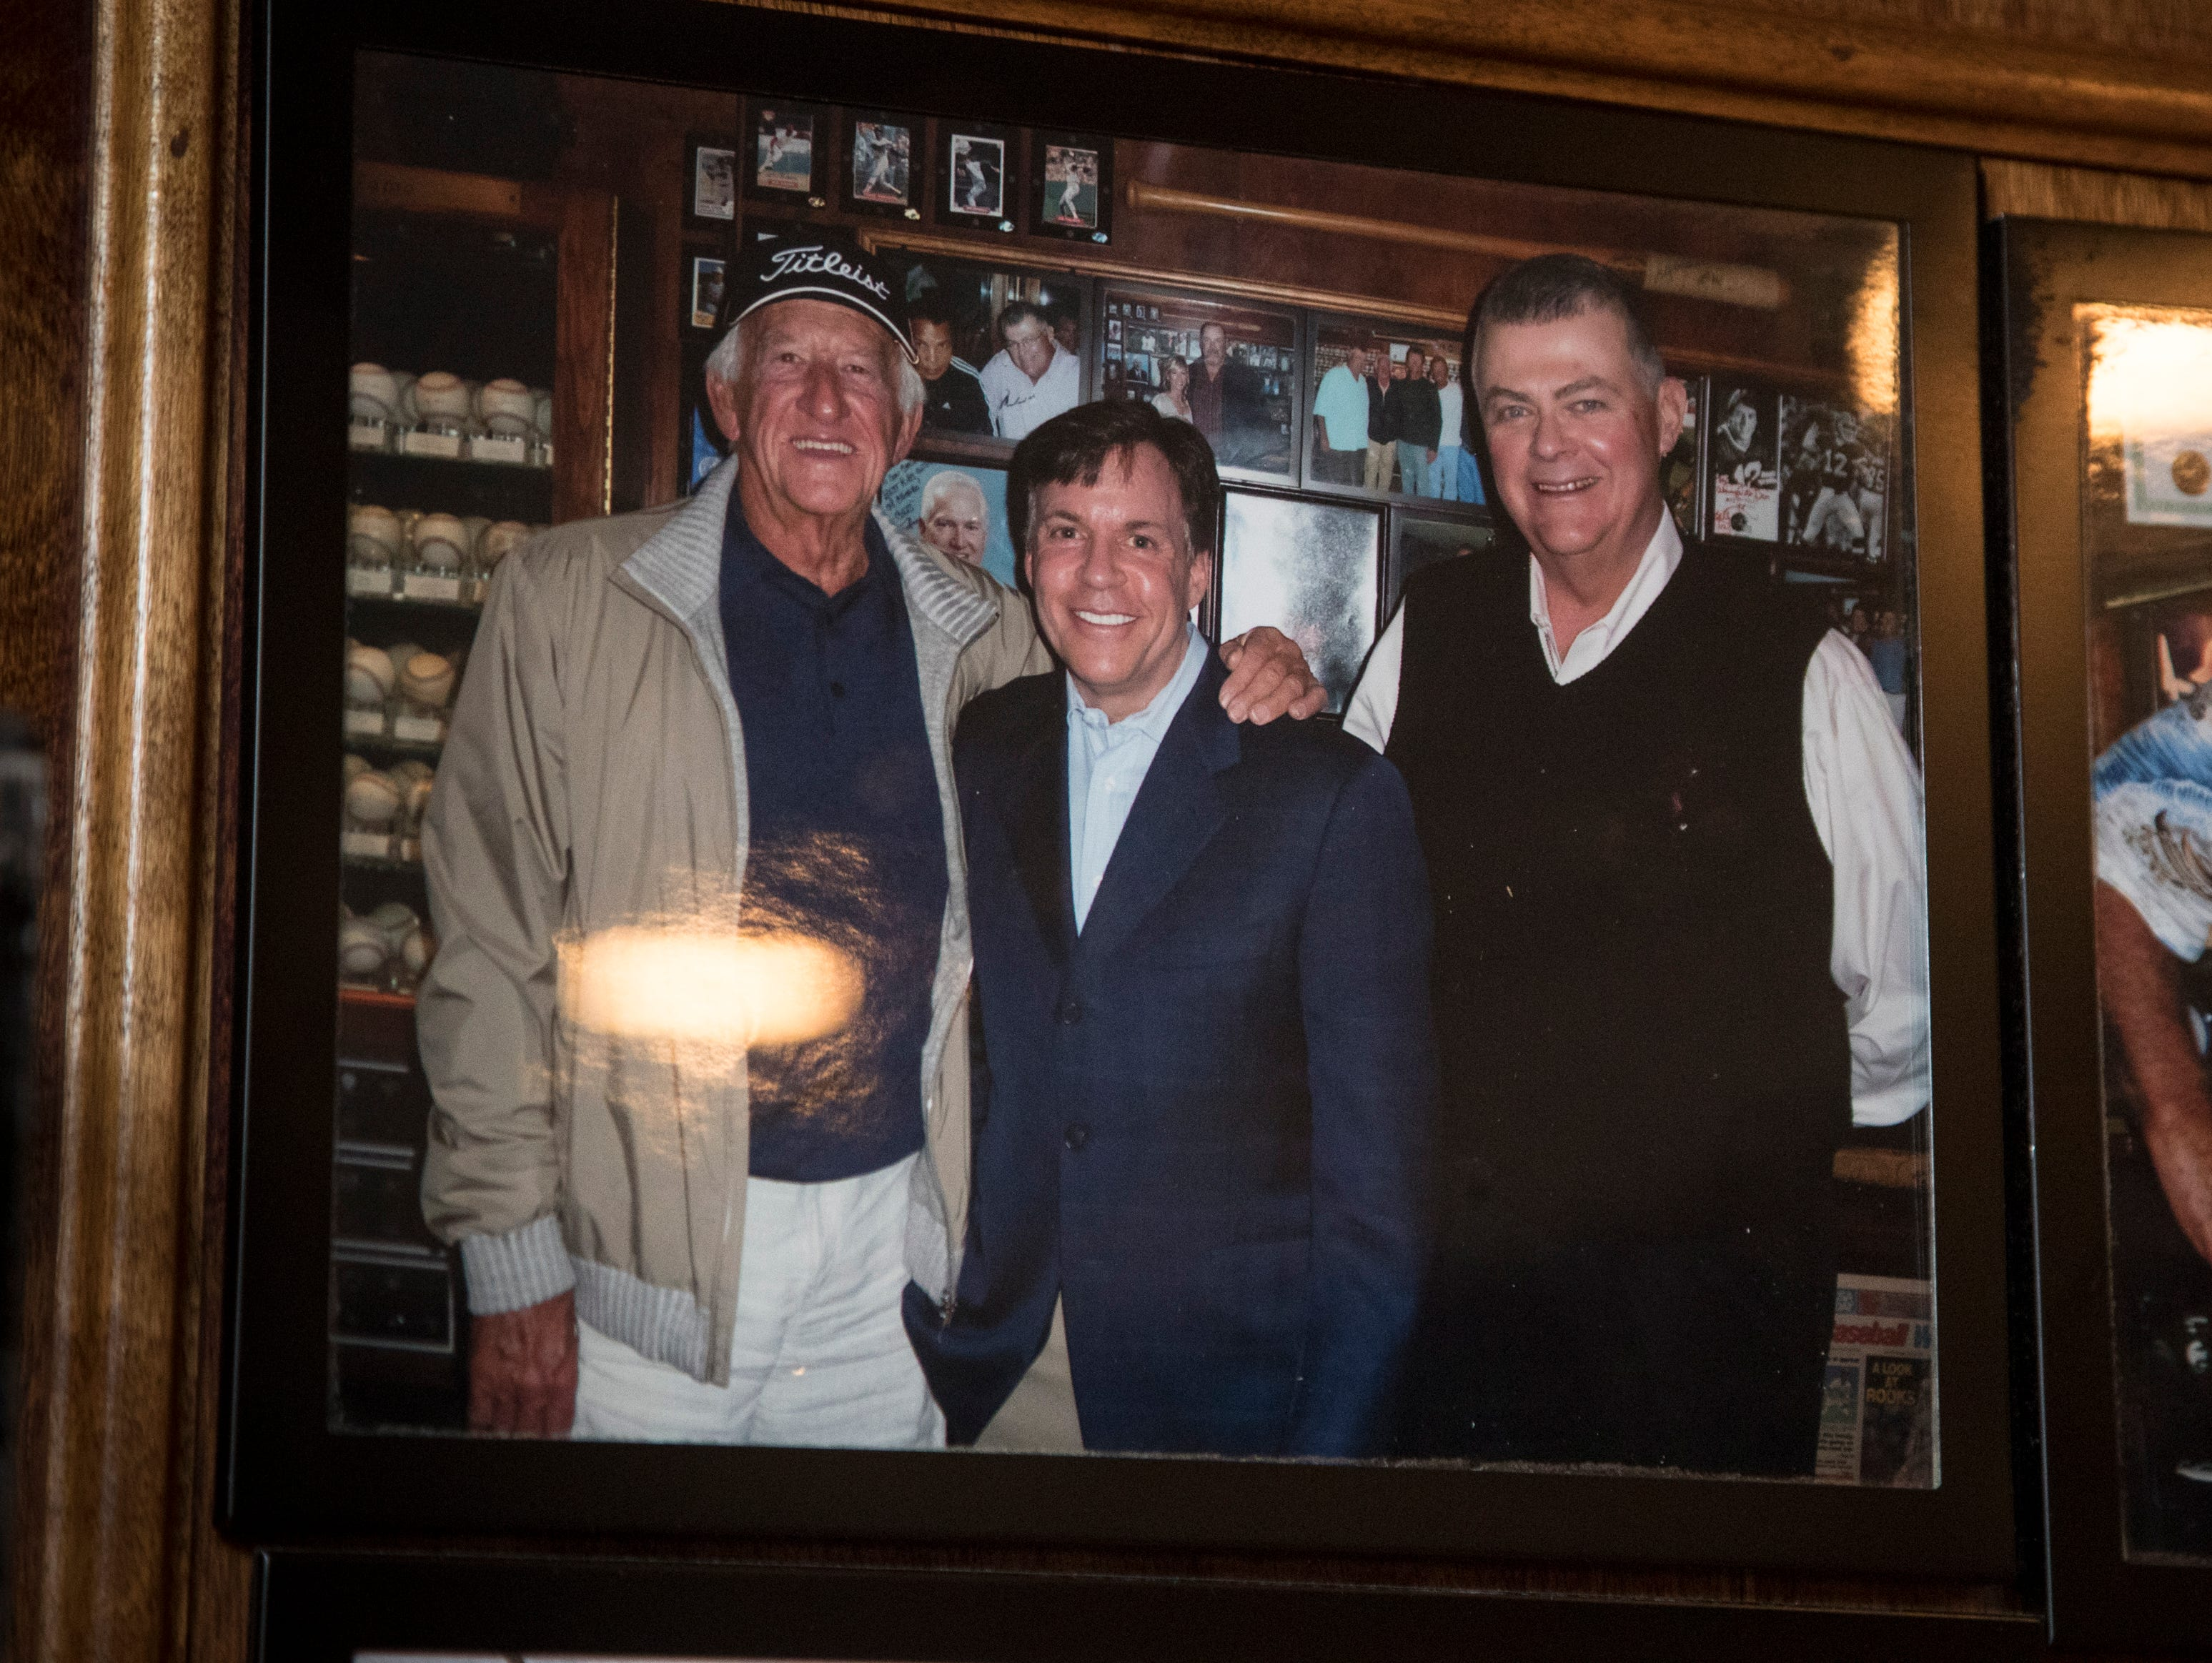 Photo of Don Carson (right) with Bob Costas (center) are seen Feb. 27, 2019, at Don & Charlie's, 7501 E. Camelback Road, Scottsdale.